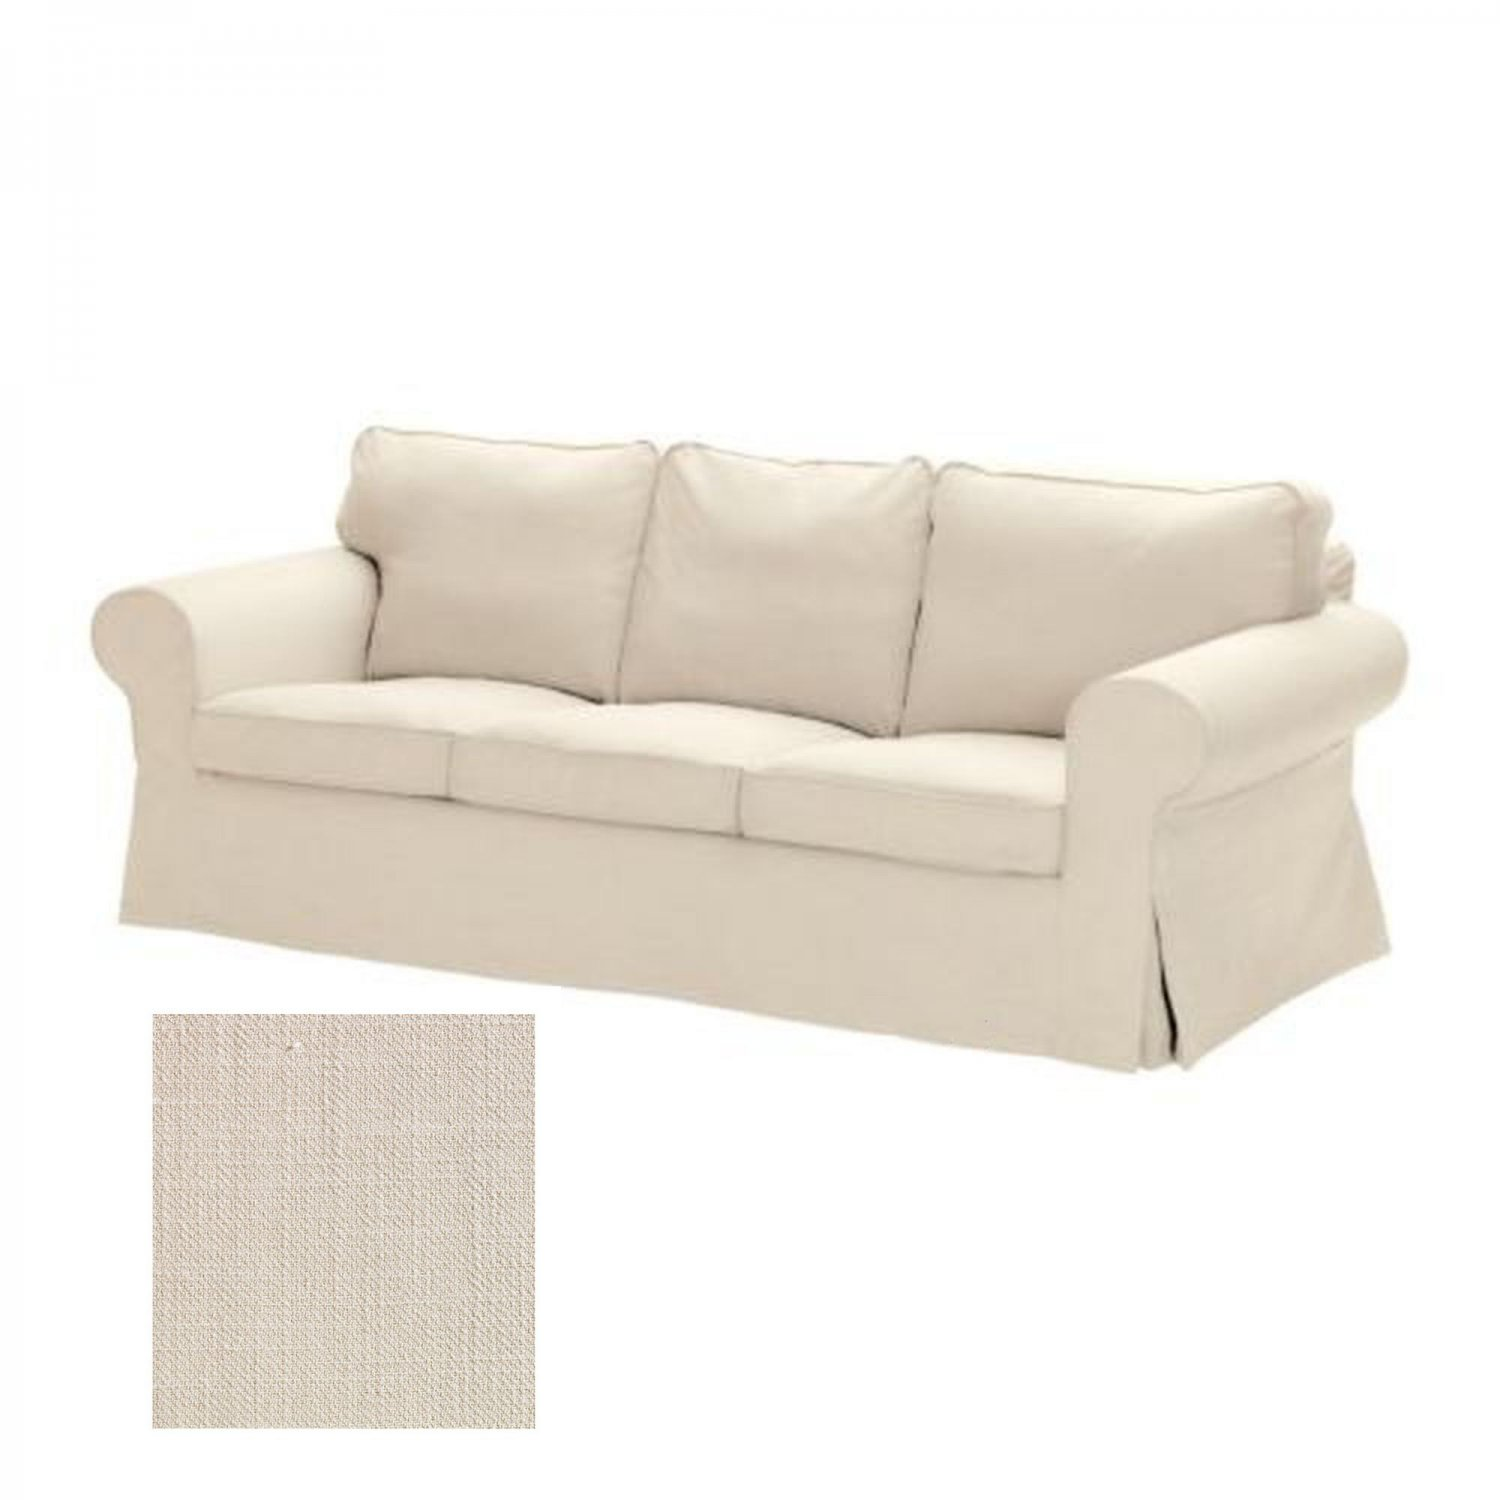 ikea karlanda sofa covers uk white leather sofas and loveseats ektorp 3 seat slipcover cover svanby beige linen